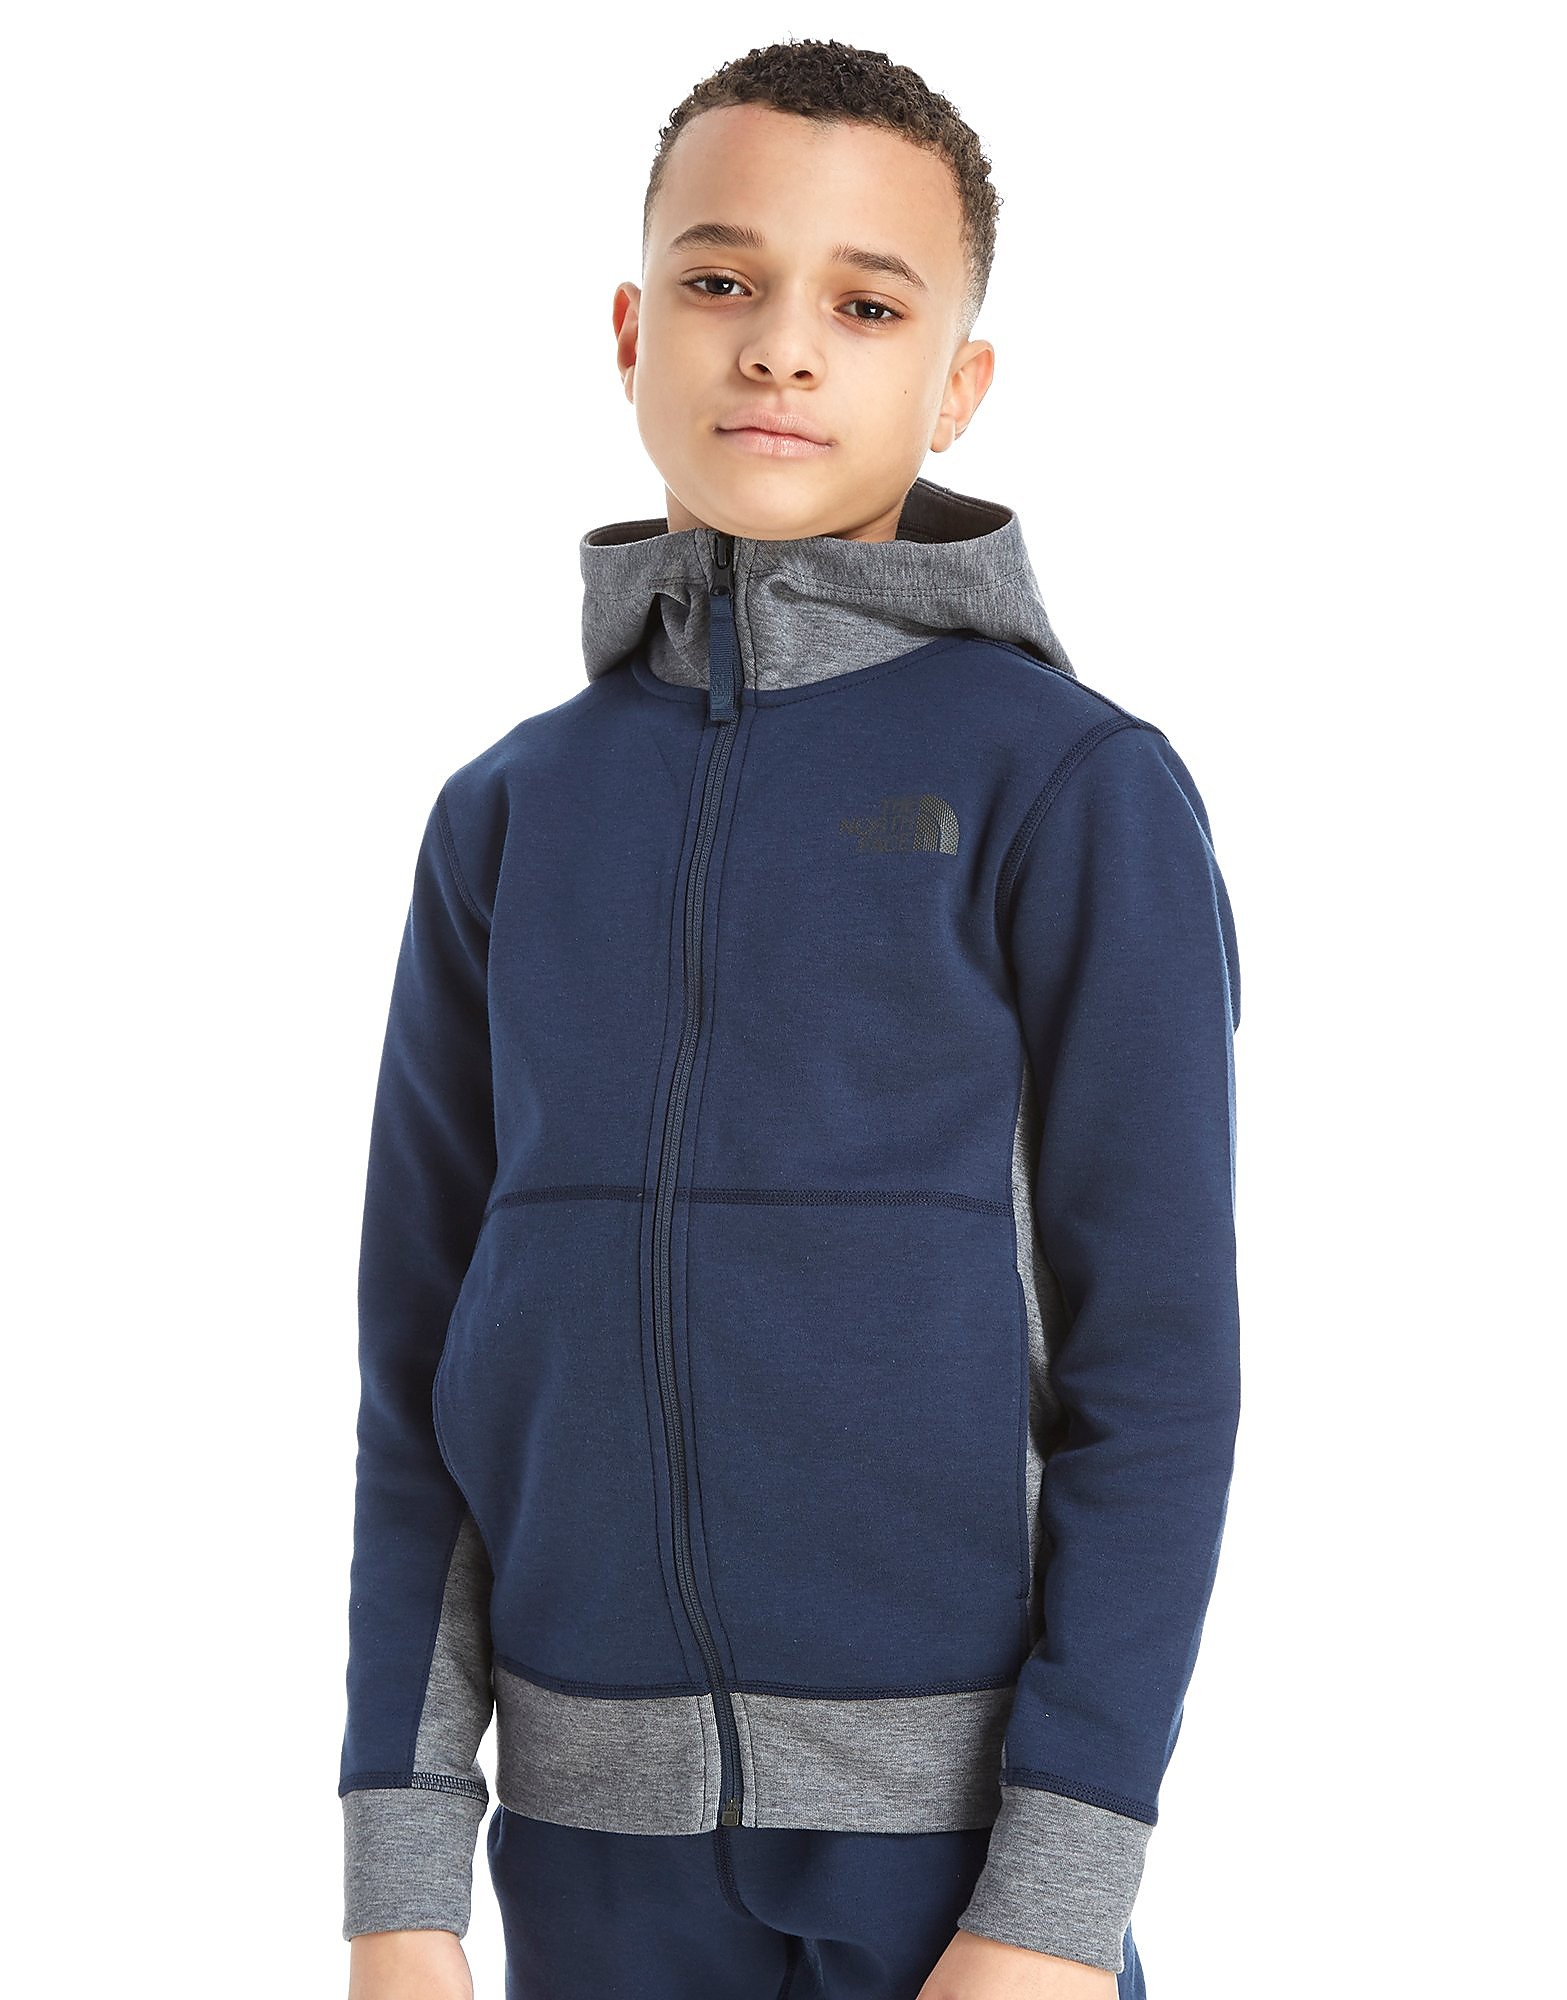 The North Face sudadera Slacker Full Zip júnior